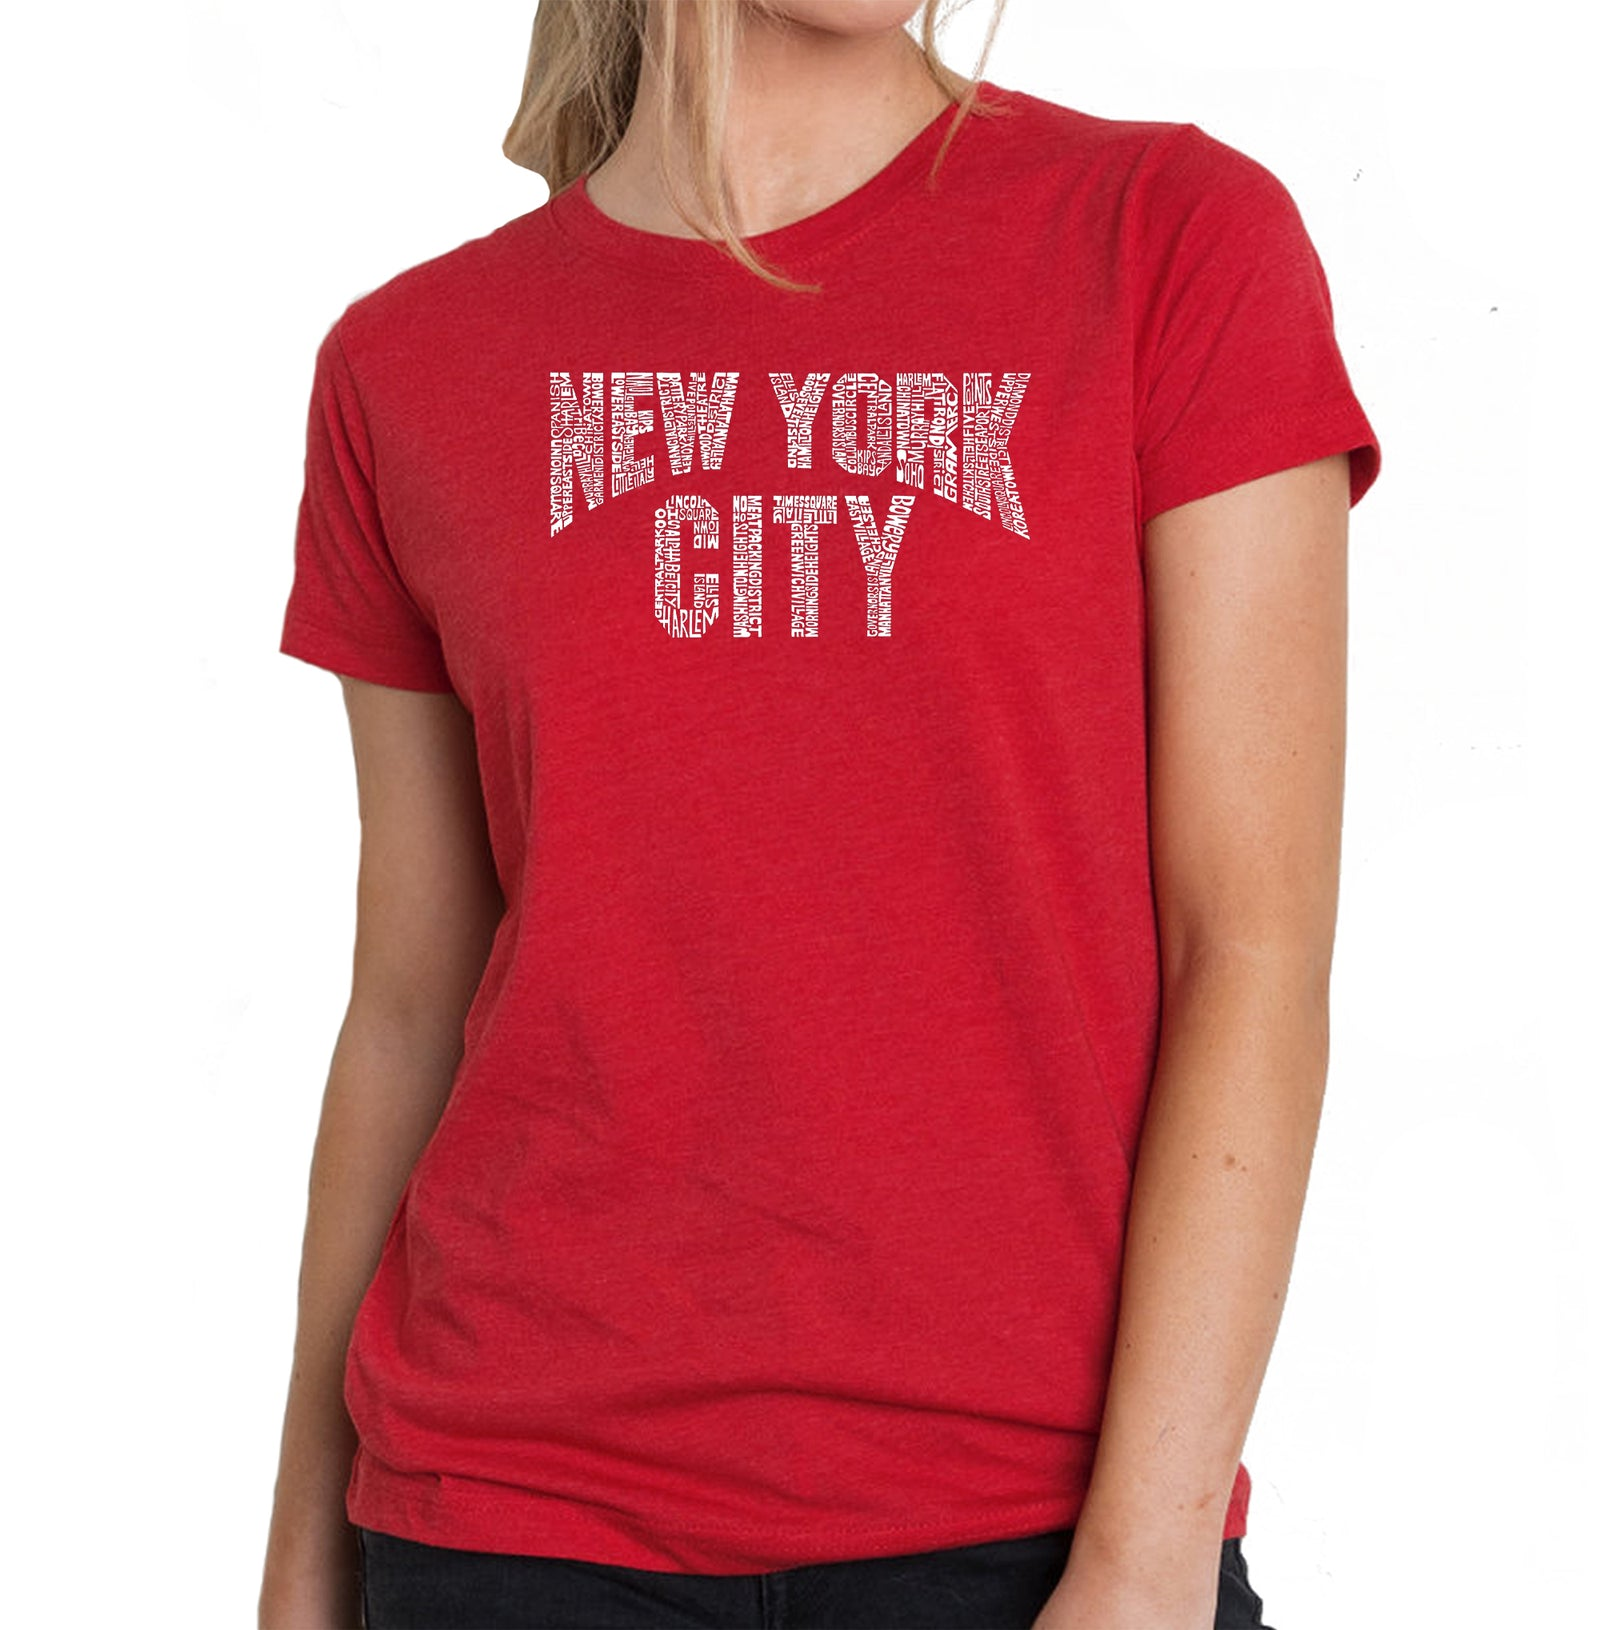 Women's Premium Blend Word Art T-shirt - NYC NEIGHBORHOODS